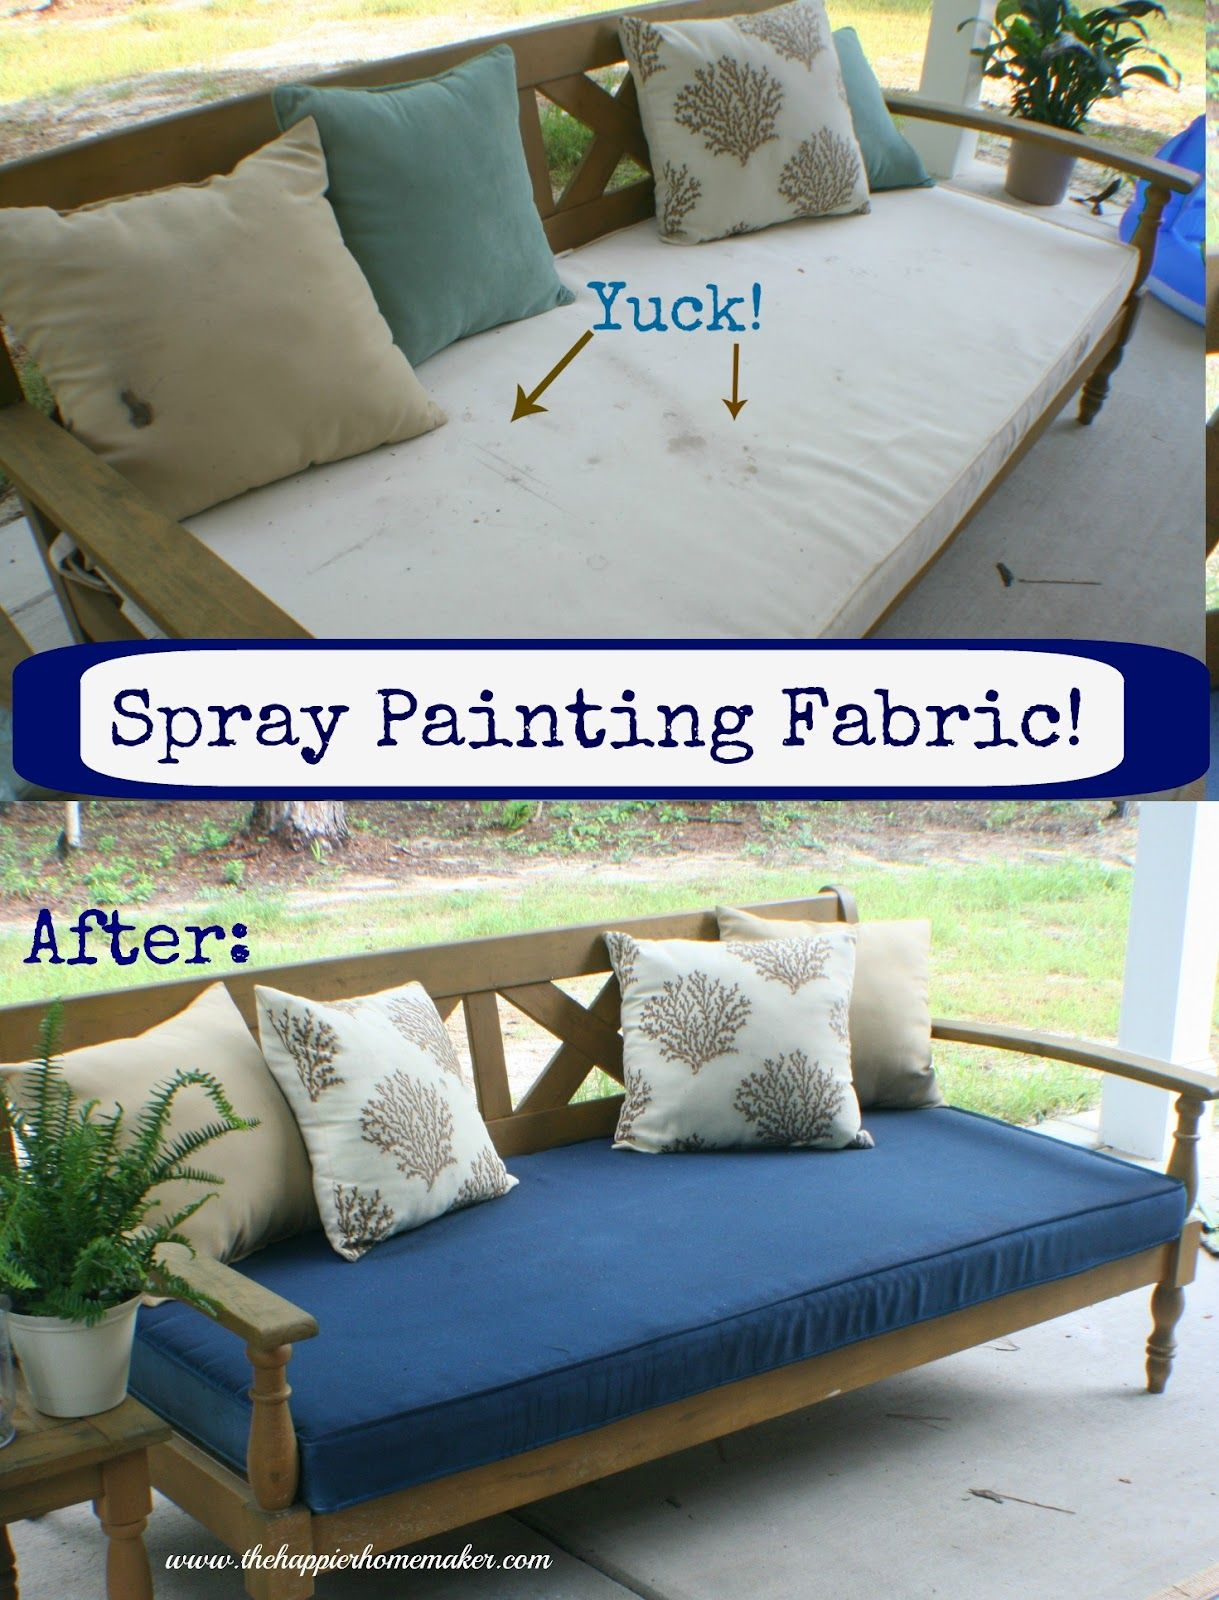 use Spray It New s Simply Spray Fabric Paint on the patio cushions